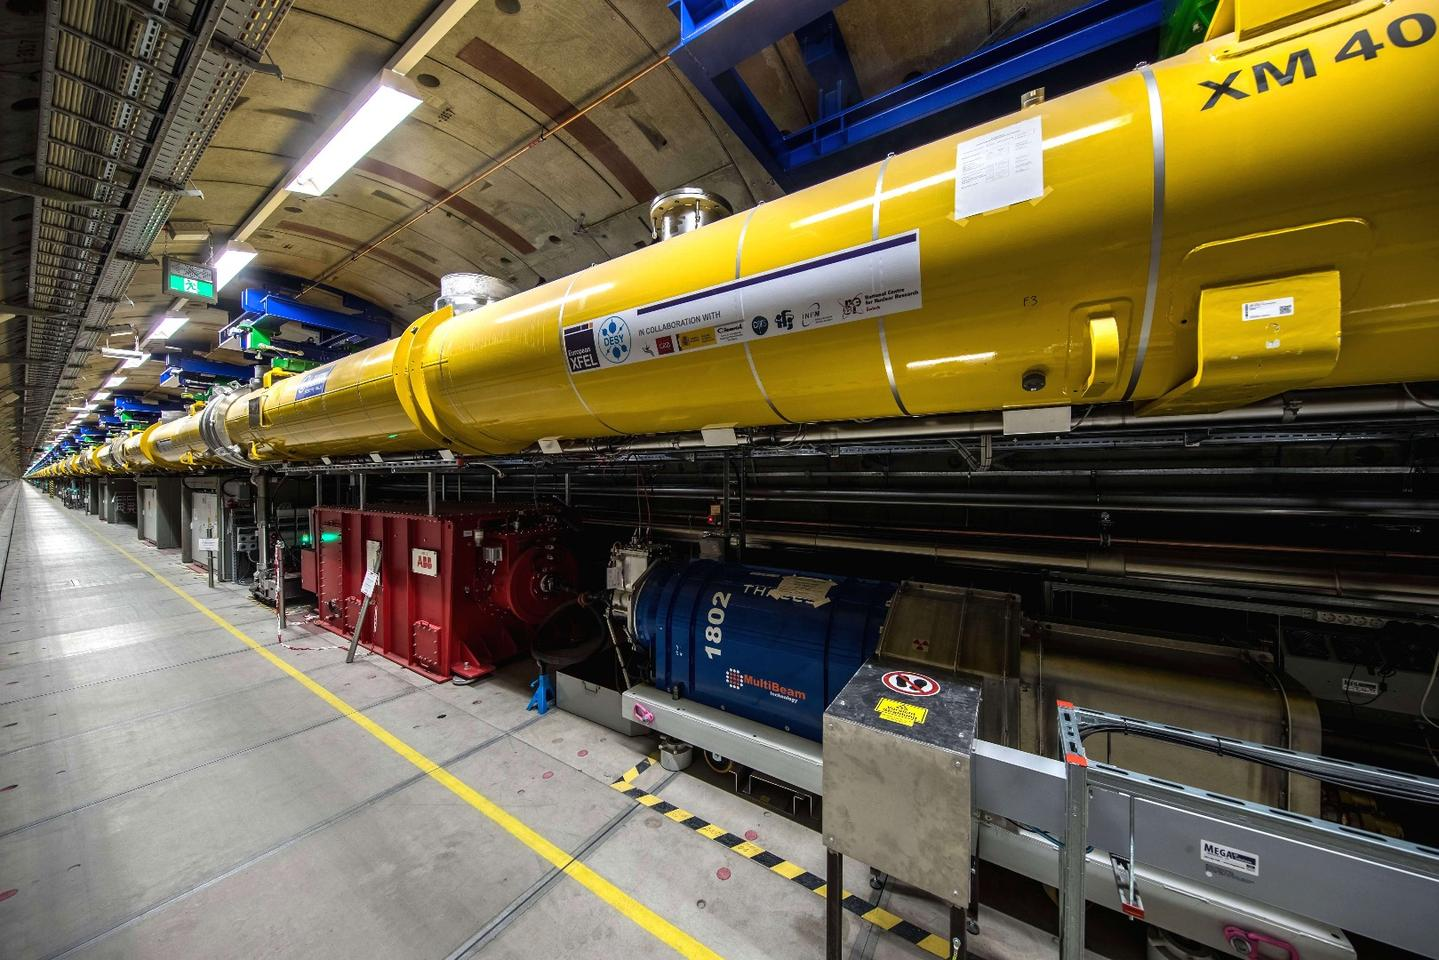 View into the 2.1-km long accelerator tunnel of theEuropean XFEL with the yellow superconducting accelerator modules hanging from the ceiling